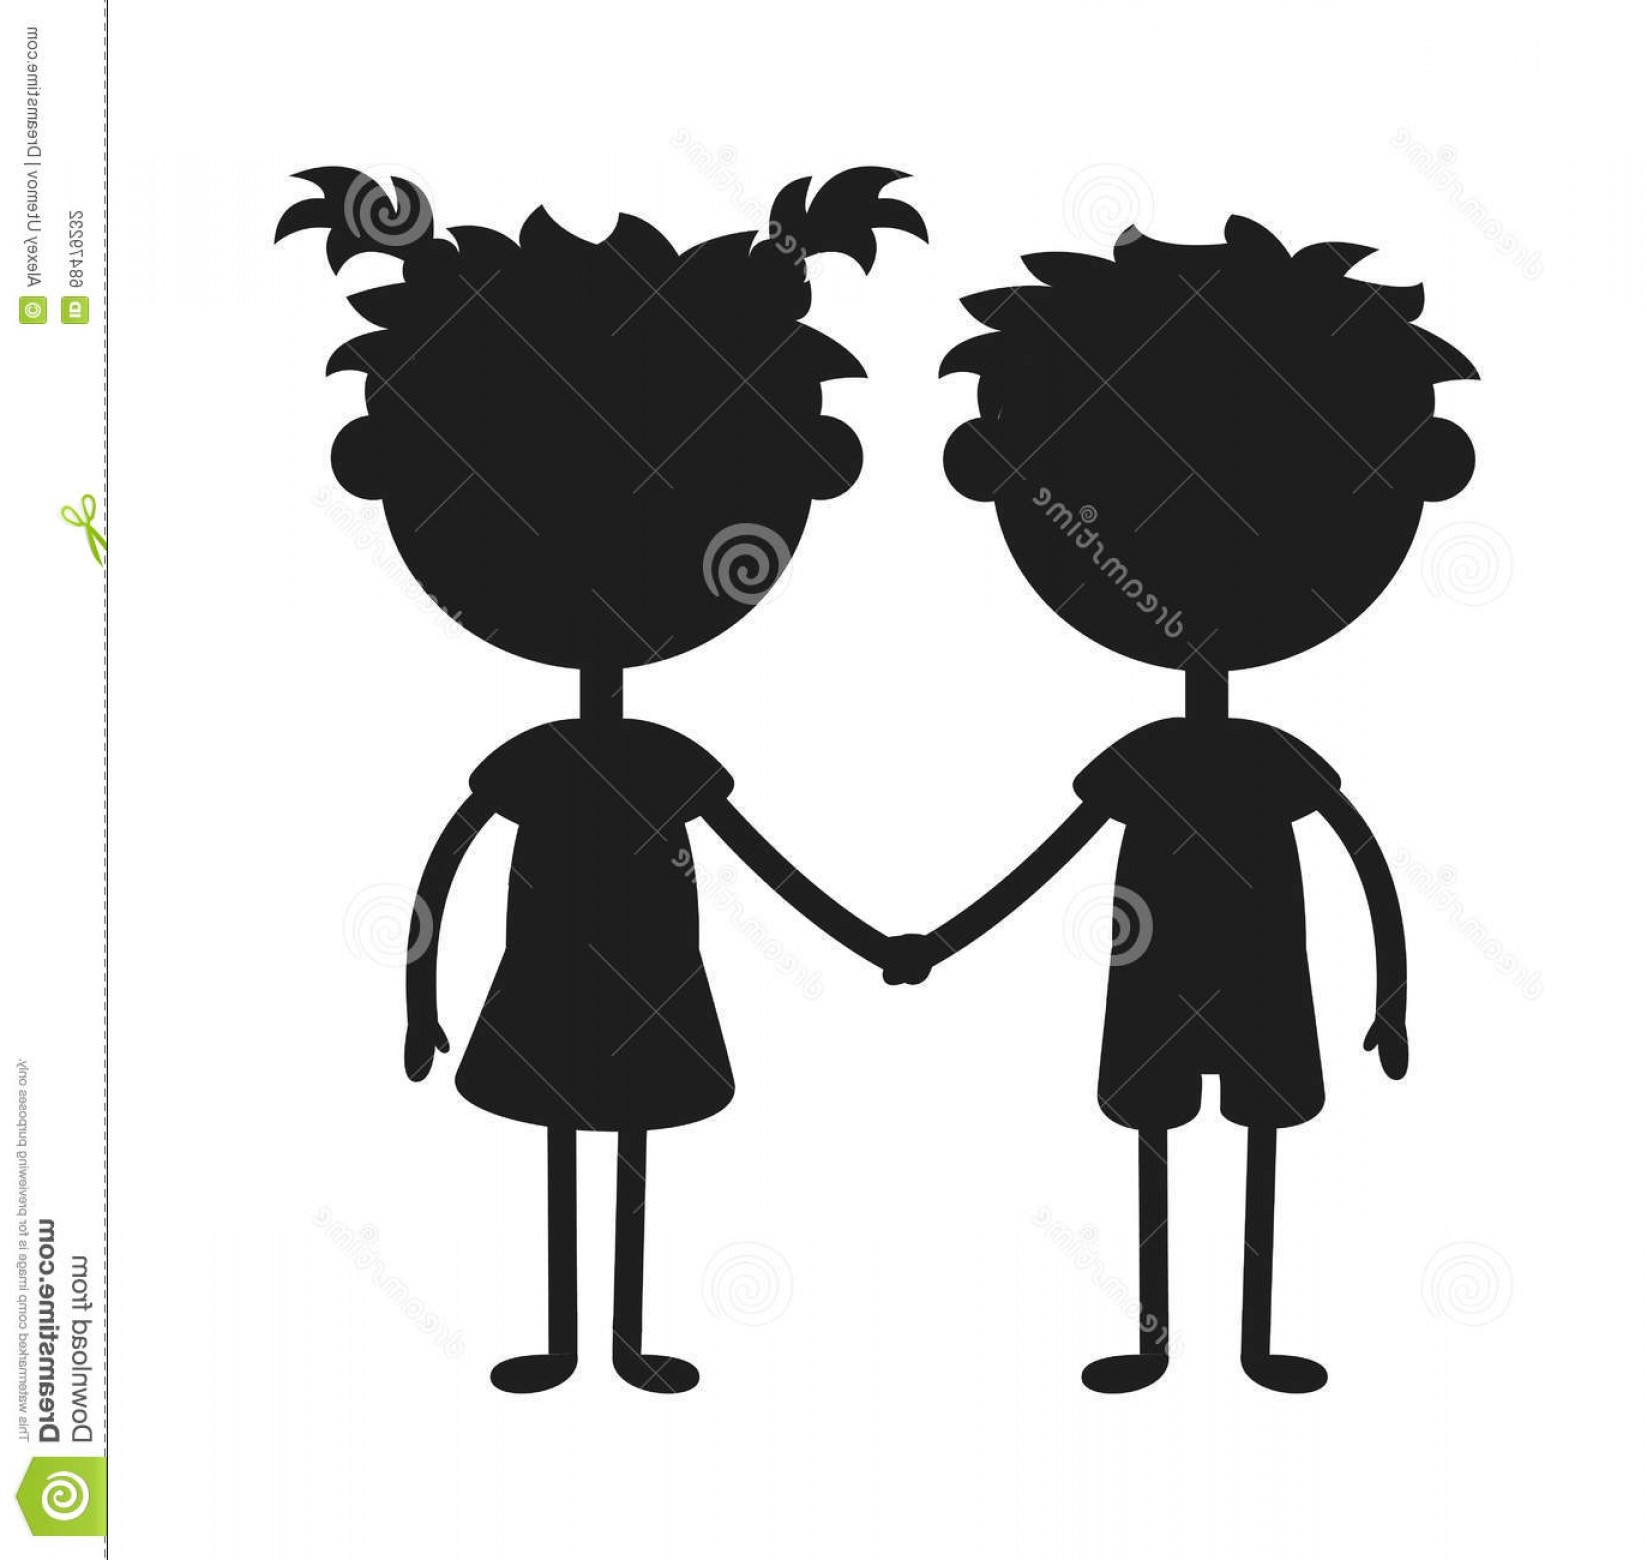 1647x1560 Vector Silhouette Black And White Boy Arenawp